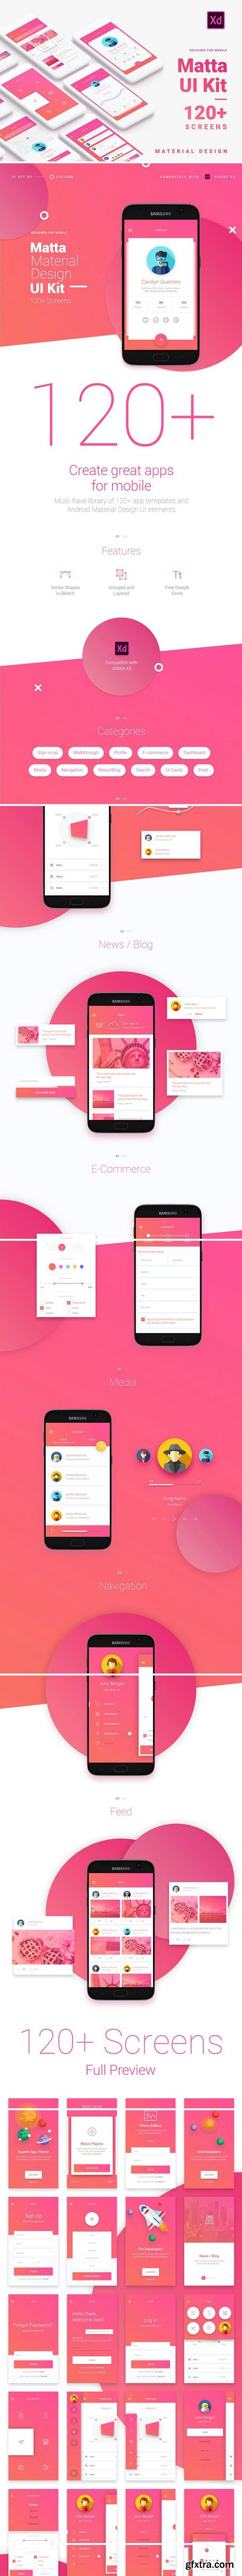 CM - Material Design Mobile UI Kit for Xd 2369431